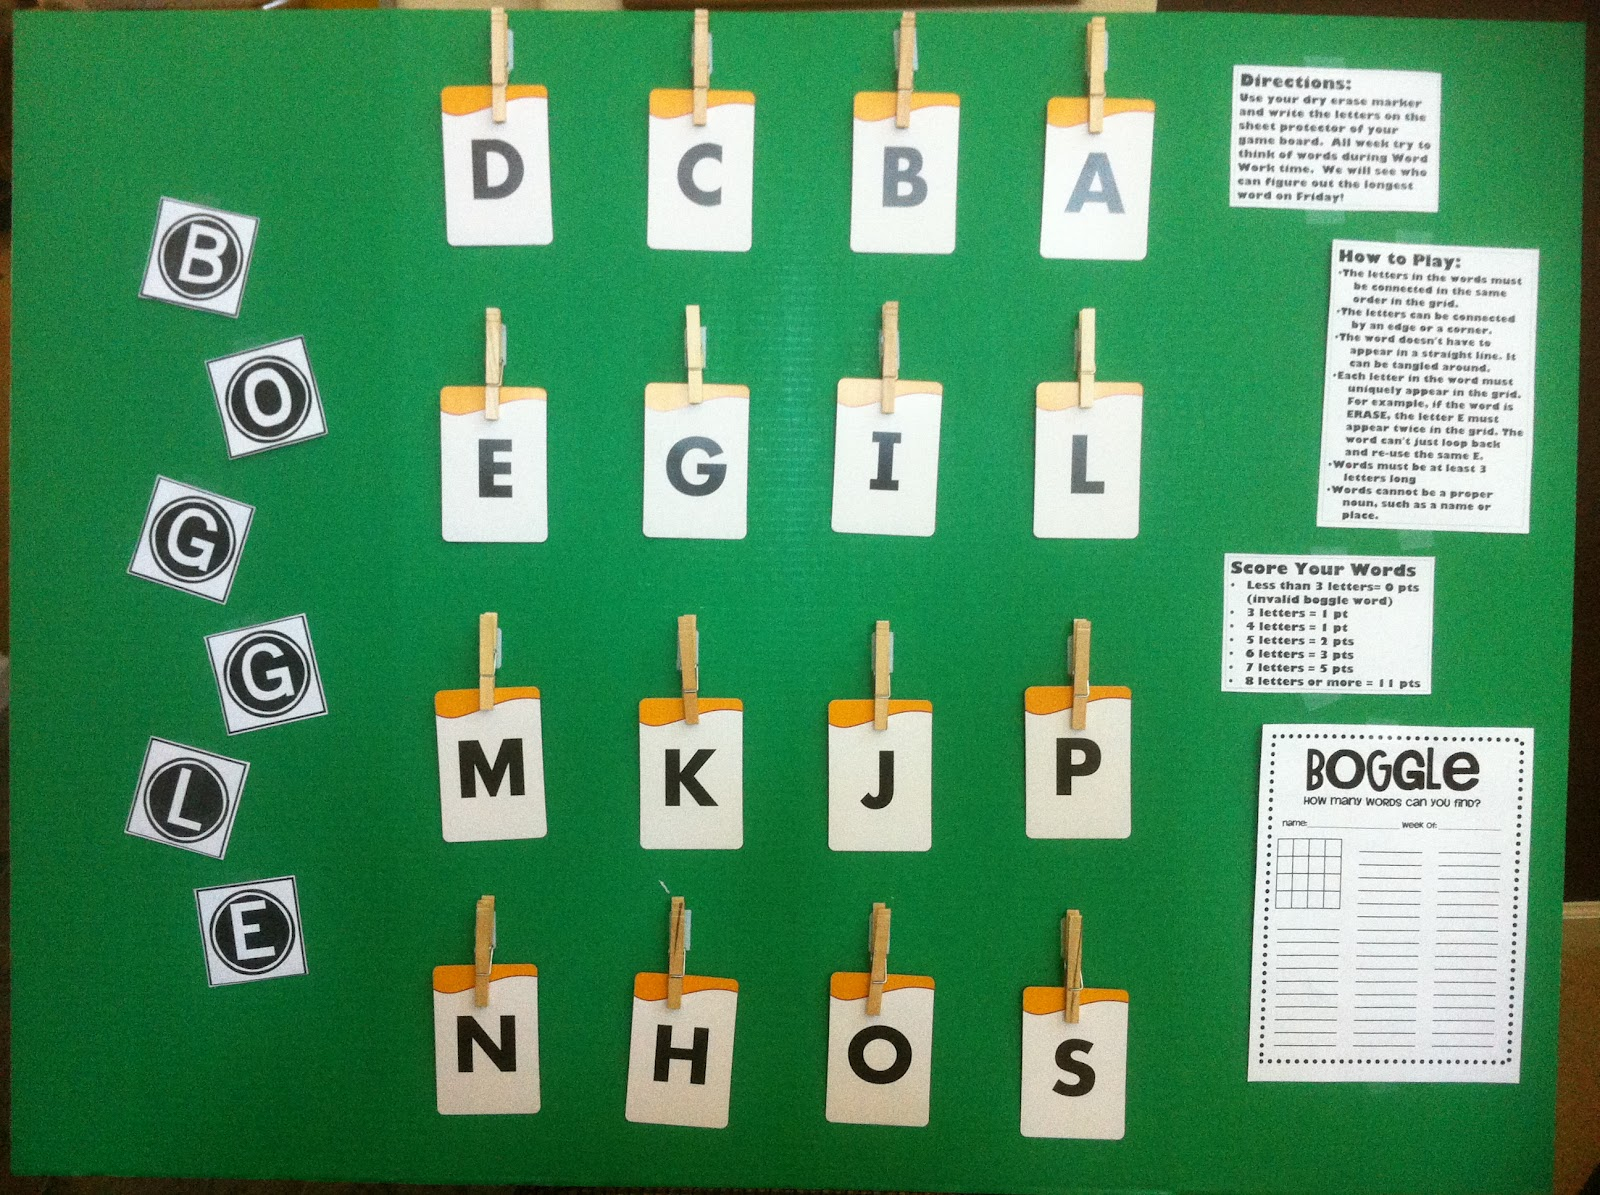 I Love My Classroom Boggle Game